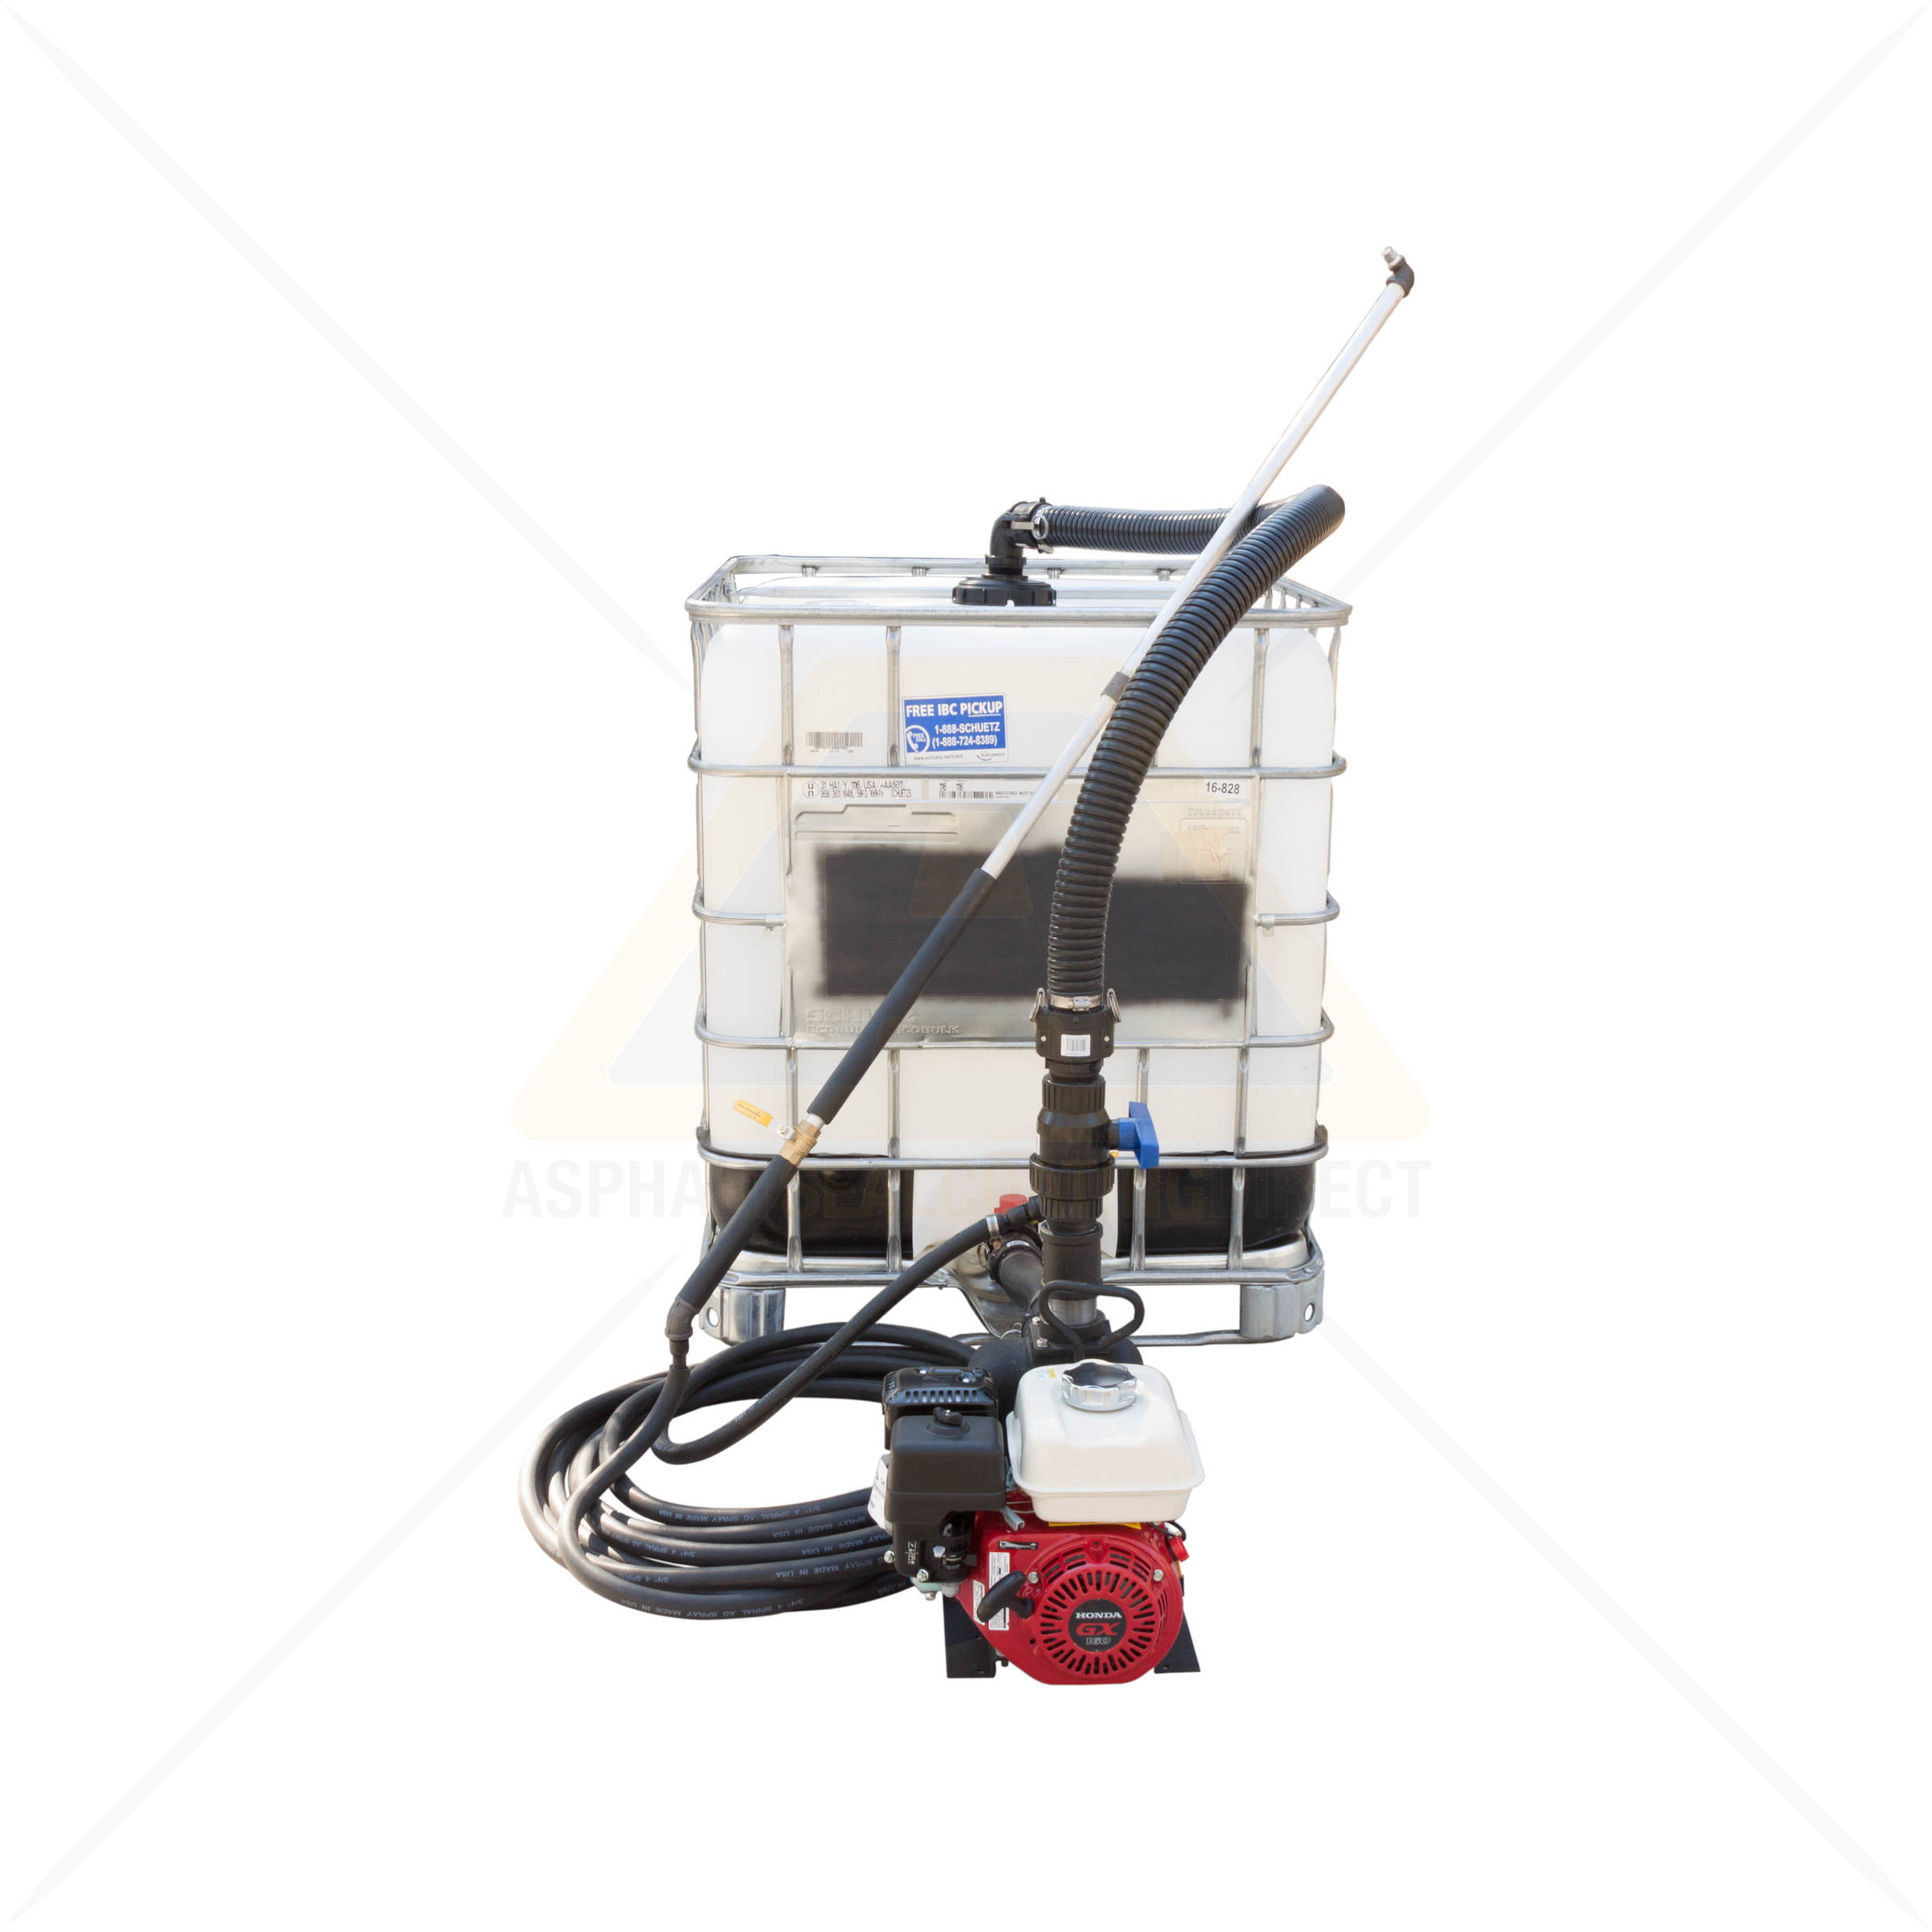 Sealcoating Spray System 275 Gallon Tote